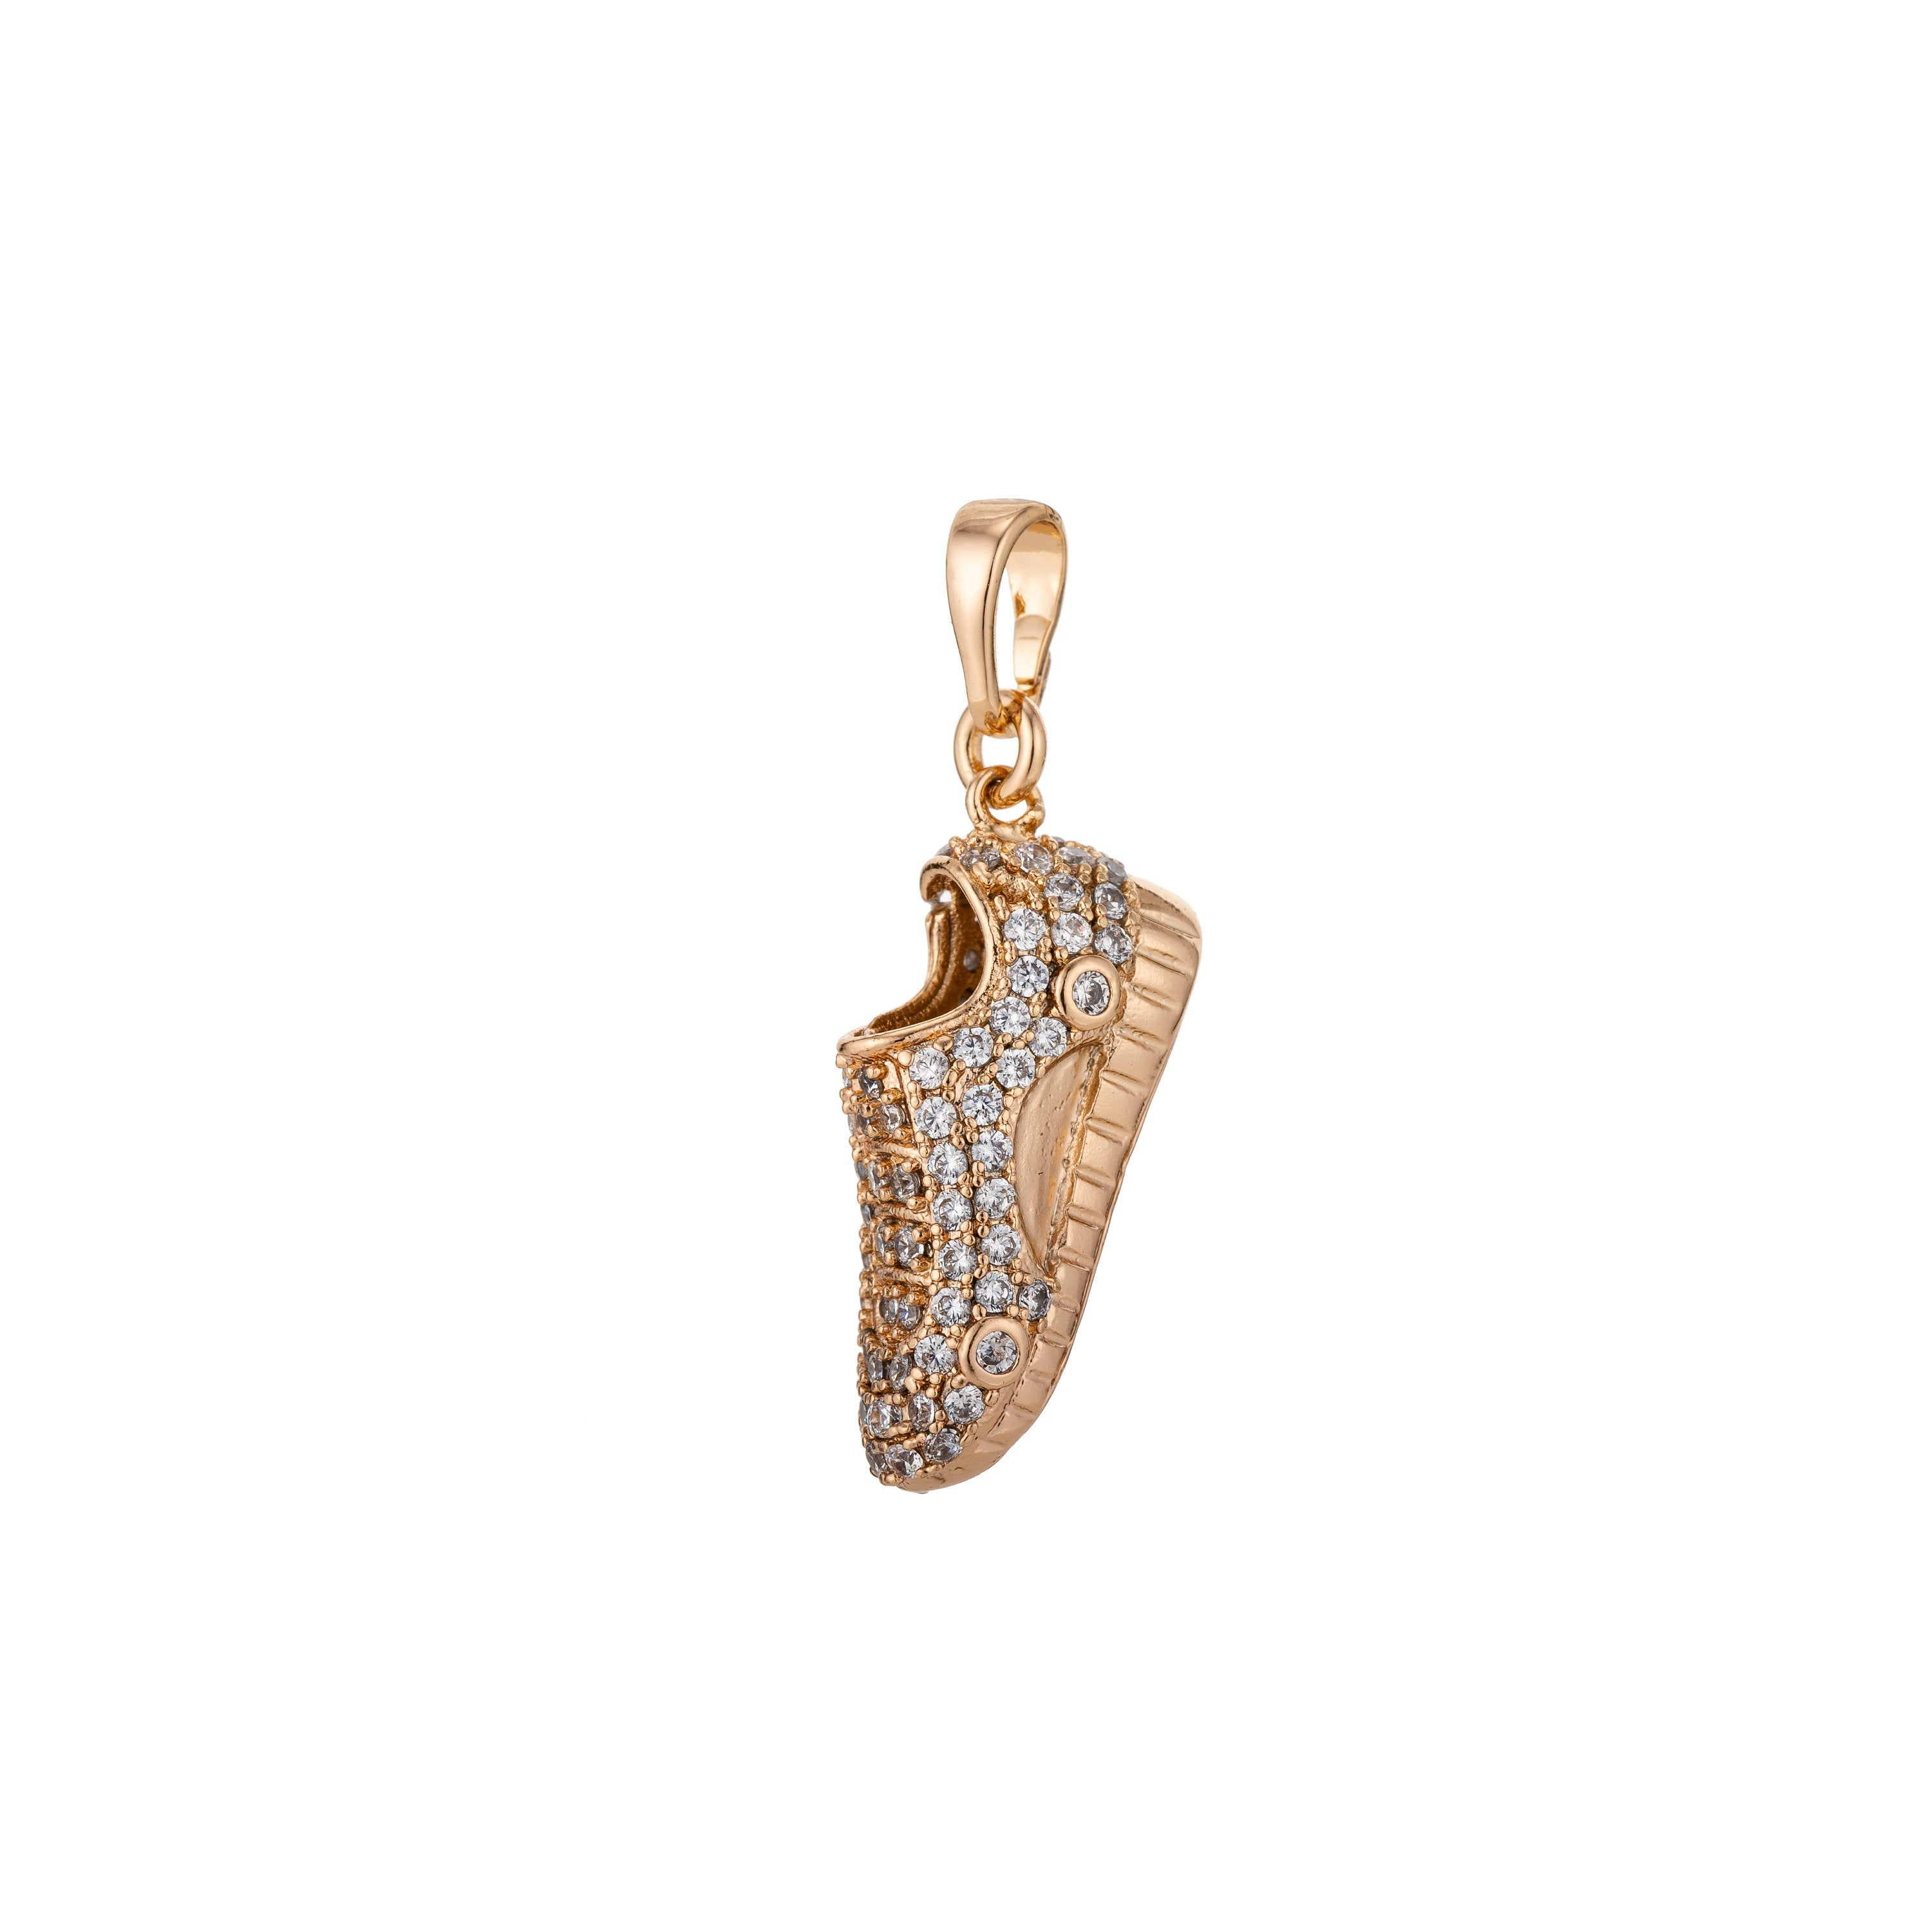 Sneaker Charm - Rania Dabagh Jewelry